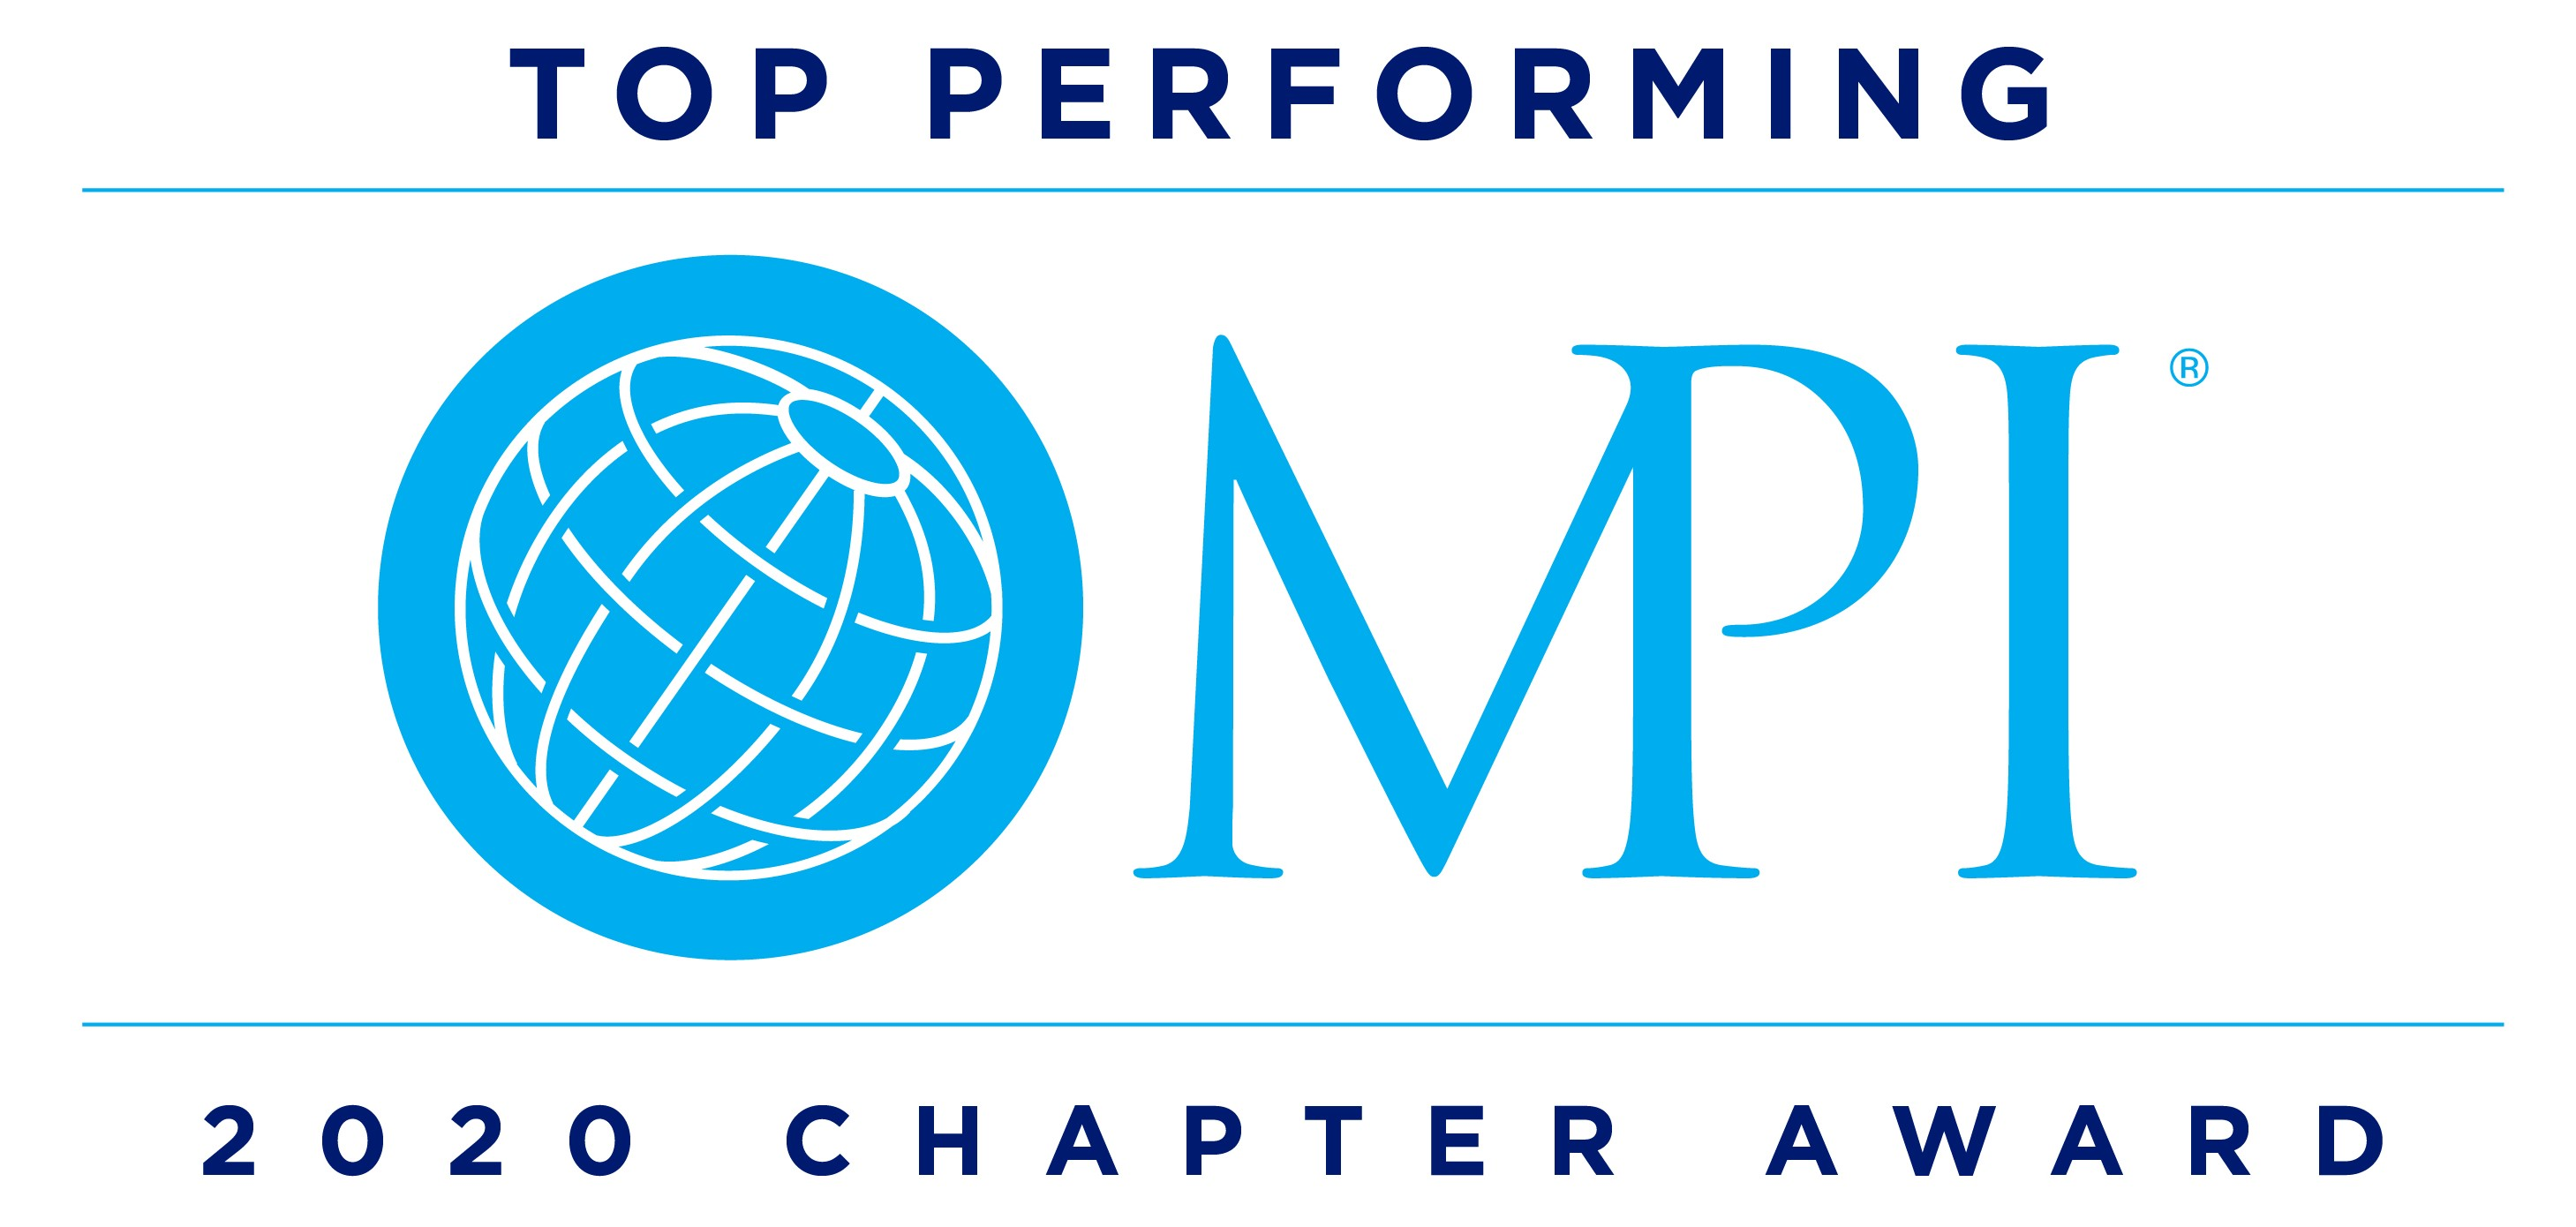 ChapterAwards_Top Performing2020